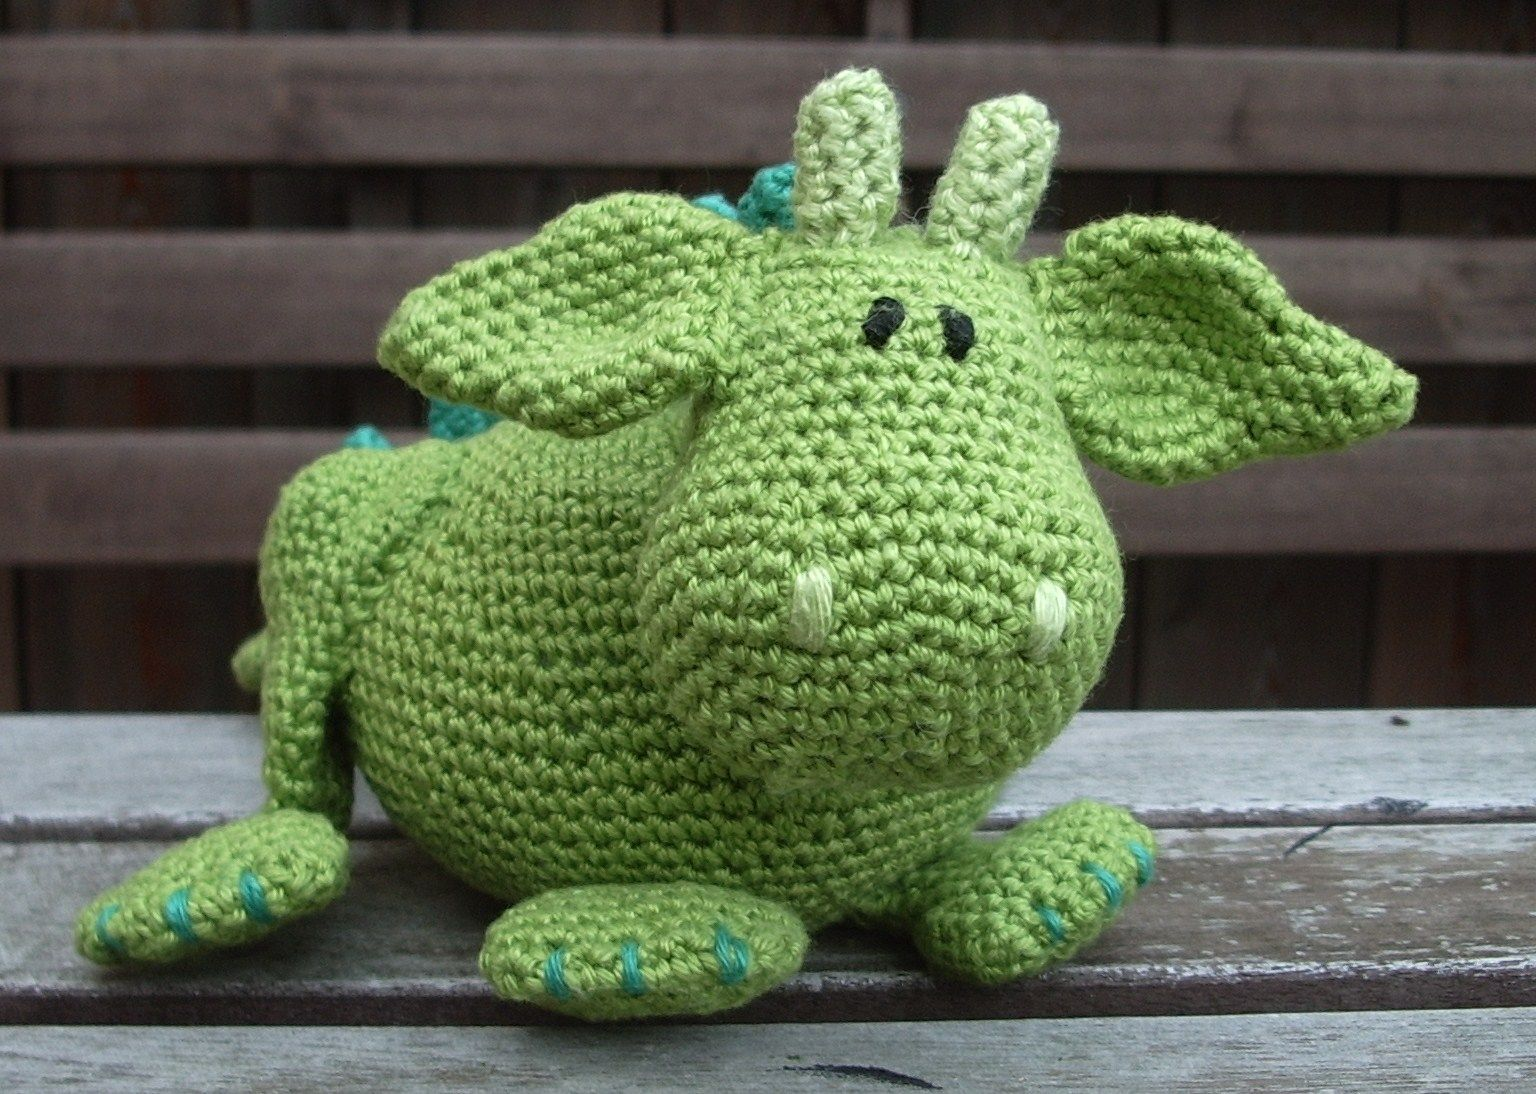 Cute crocheted dragon, pattern from a book (Amigurumi and more - Tessa van Riet-Ernst)